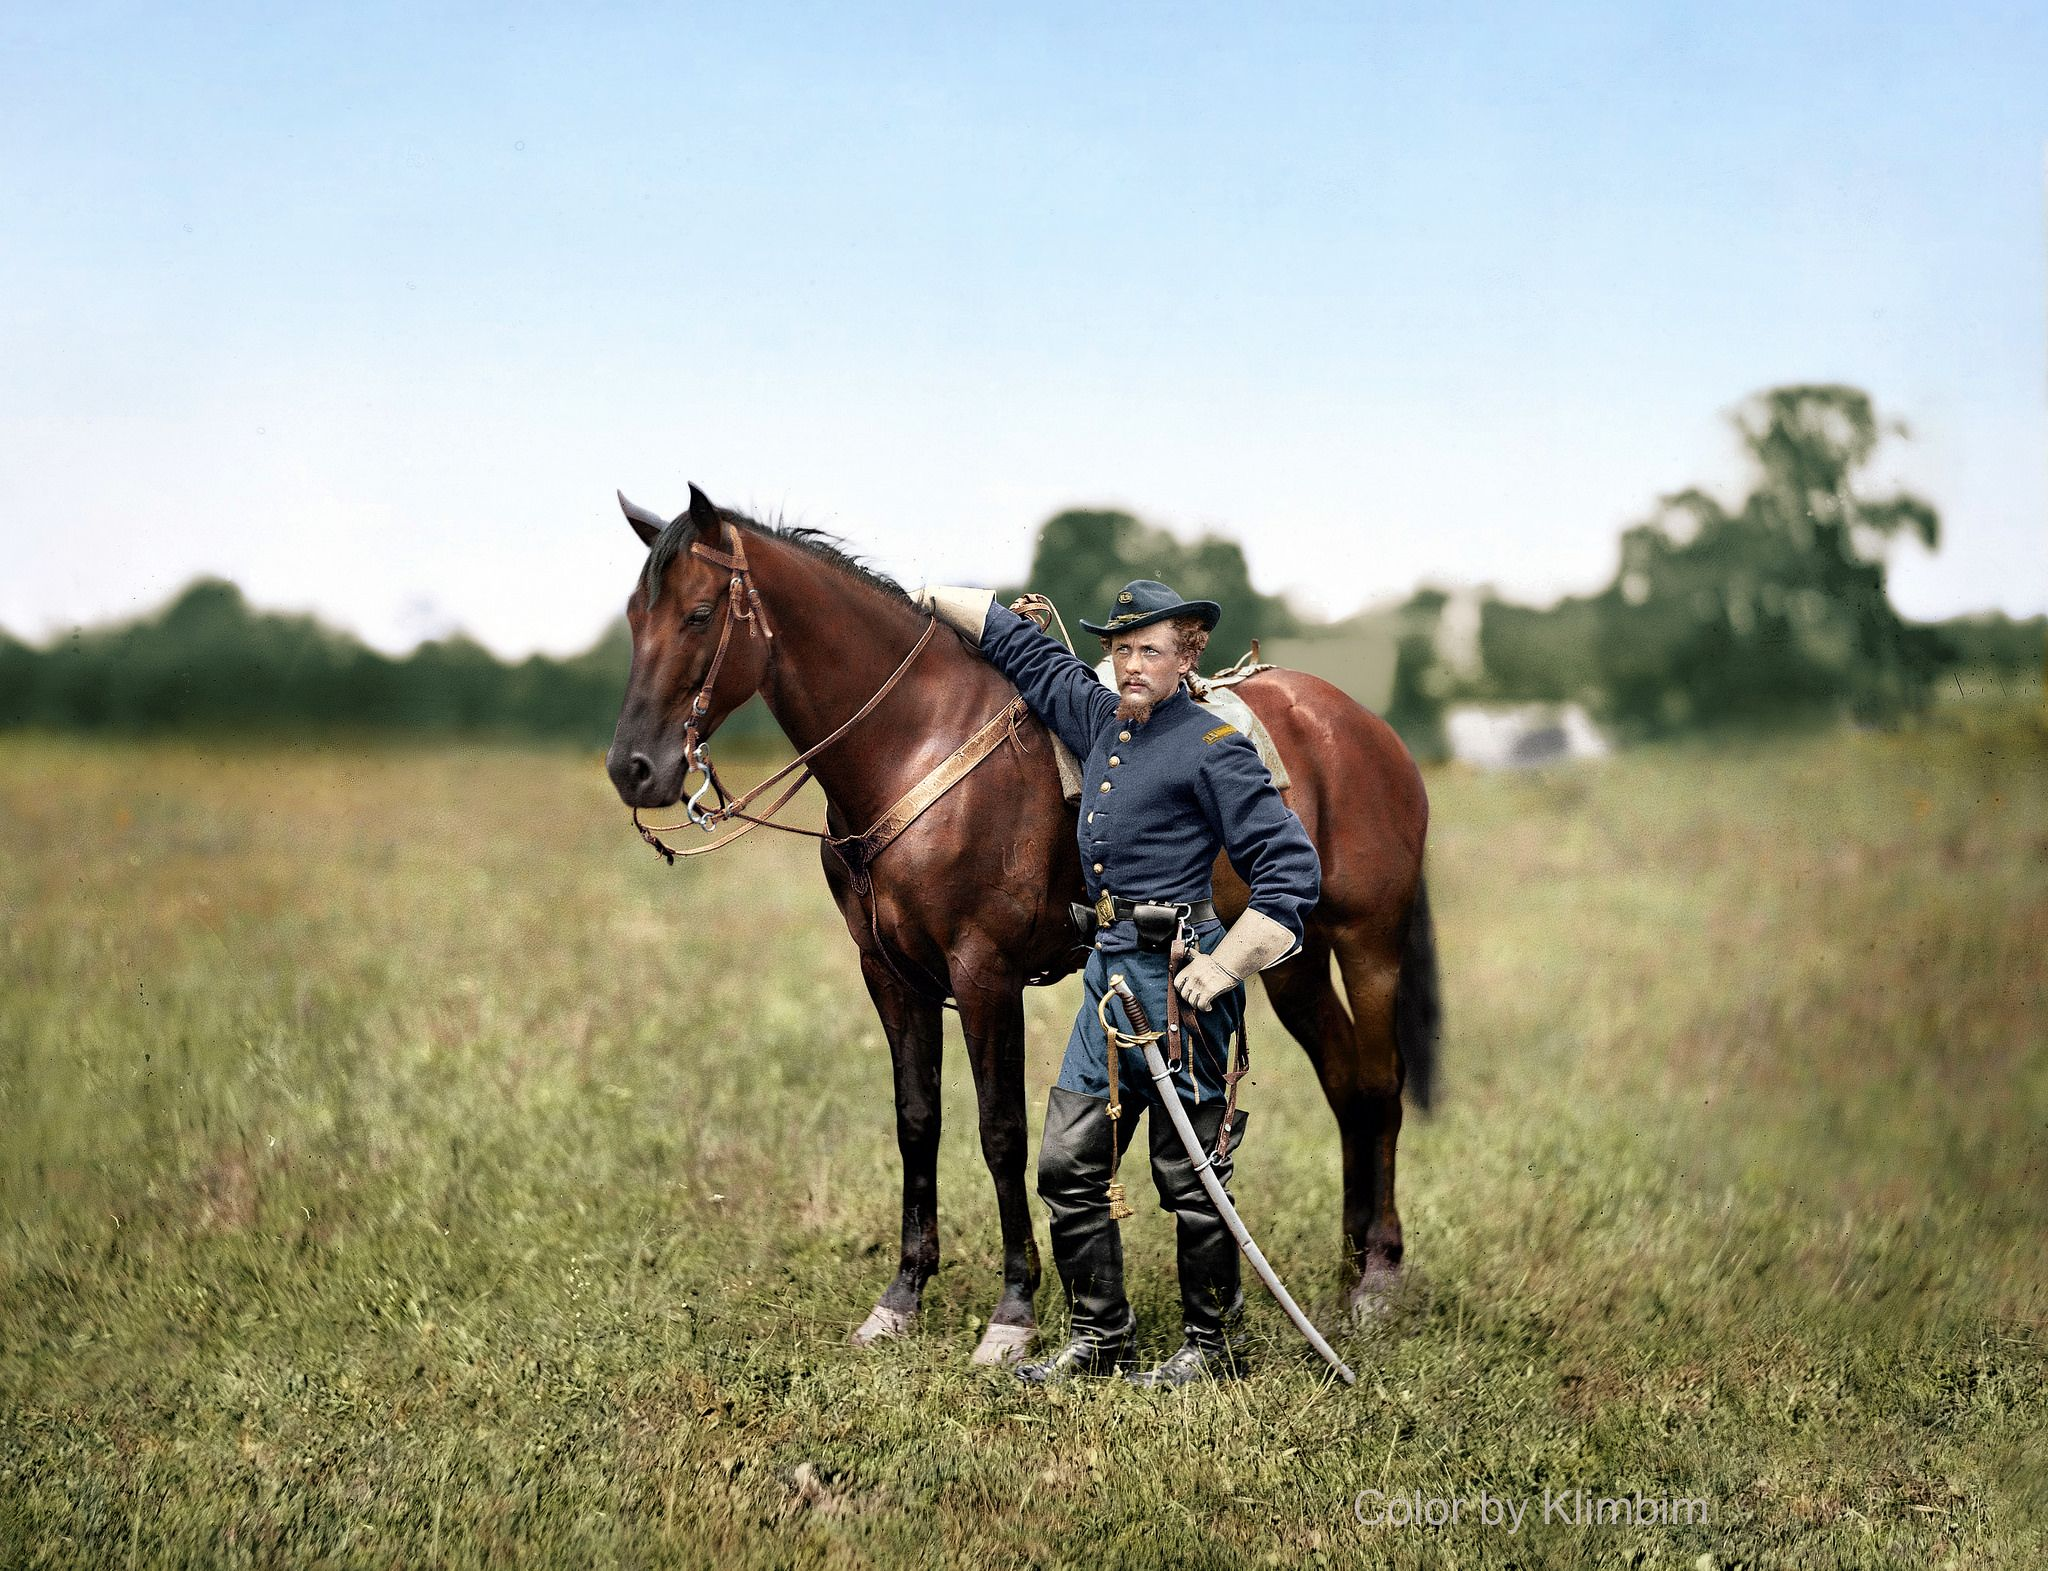 """https://flic.kr/p/N6yHDS   Captain Henry Page, 1863   August 1863. Bealeton, Virginia. """"Capt. Henry Page, assistant quartermaster, at Army of Potomac headquarters with horse."""